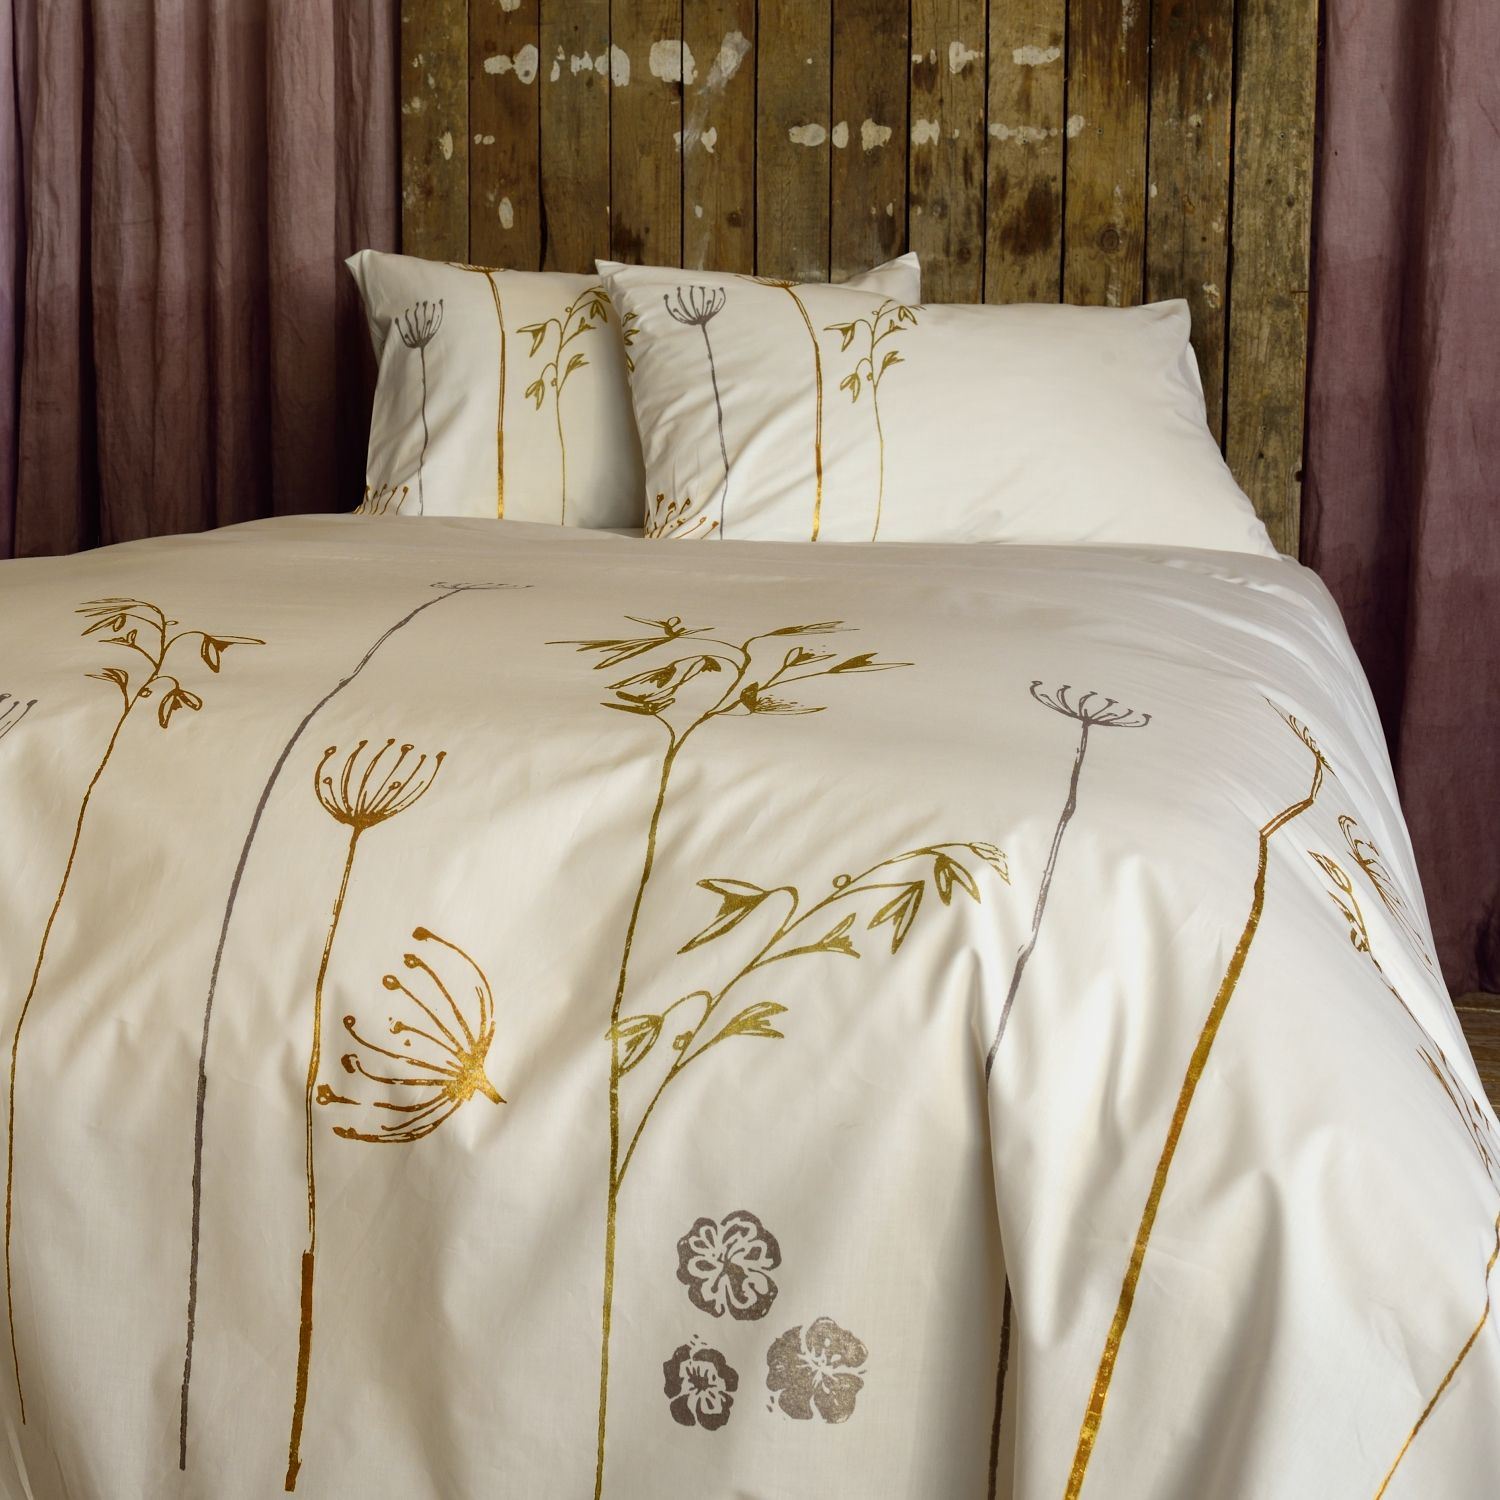 Beautiful luxury bedding set exclusively hand printed by Stamperia